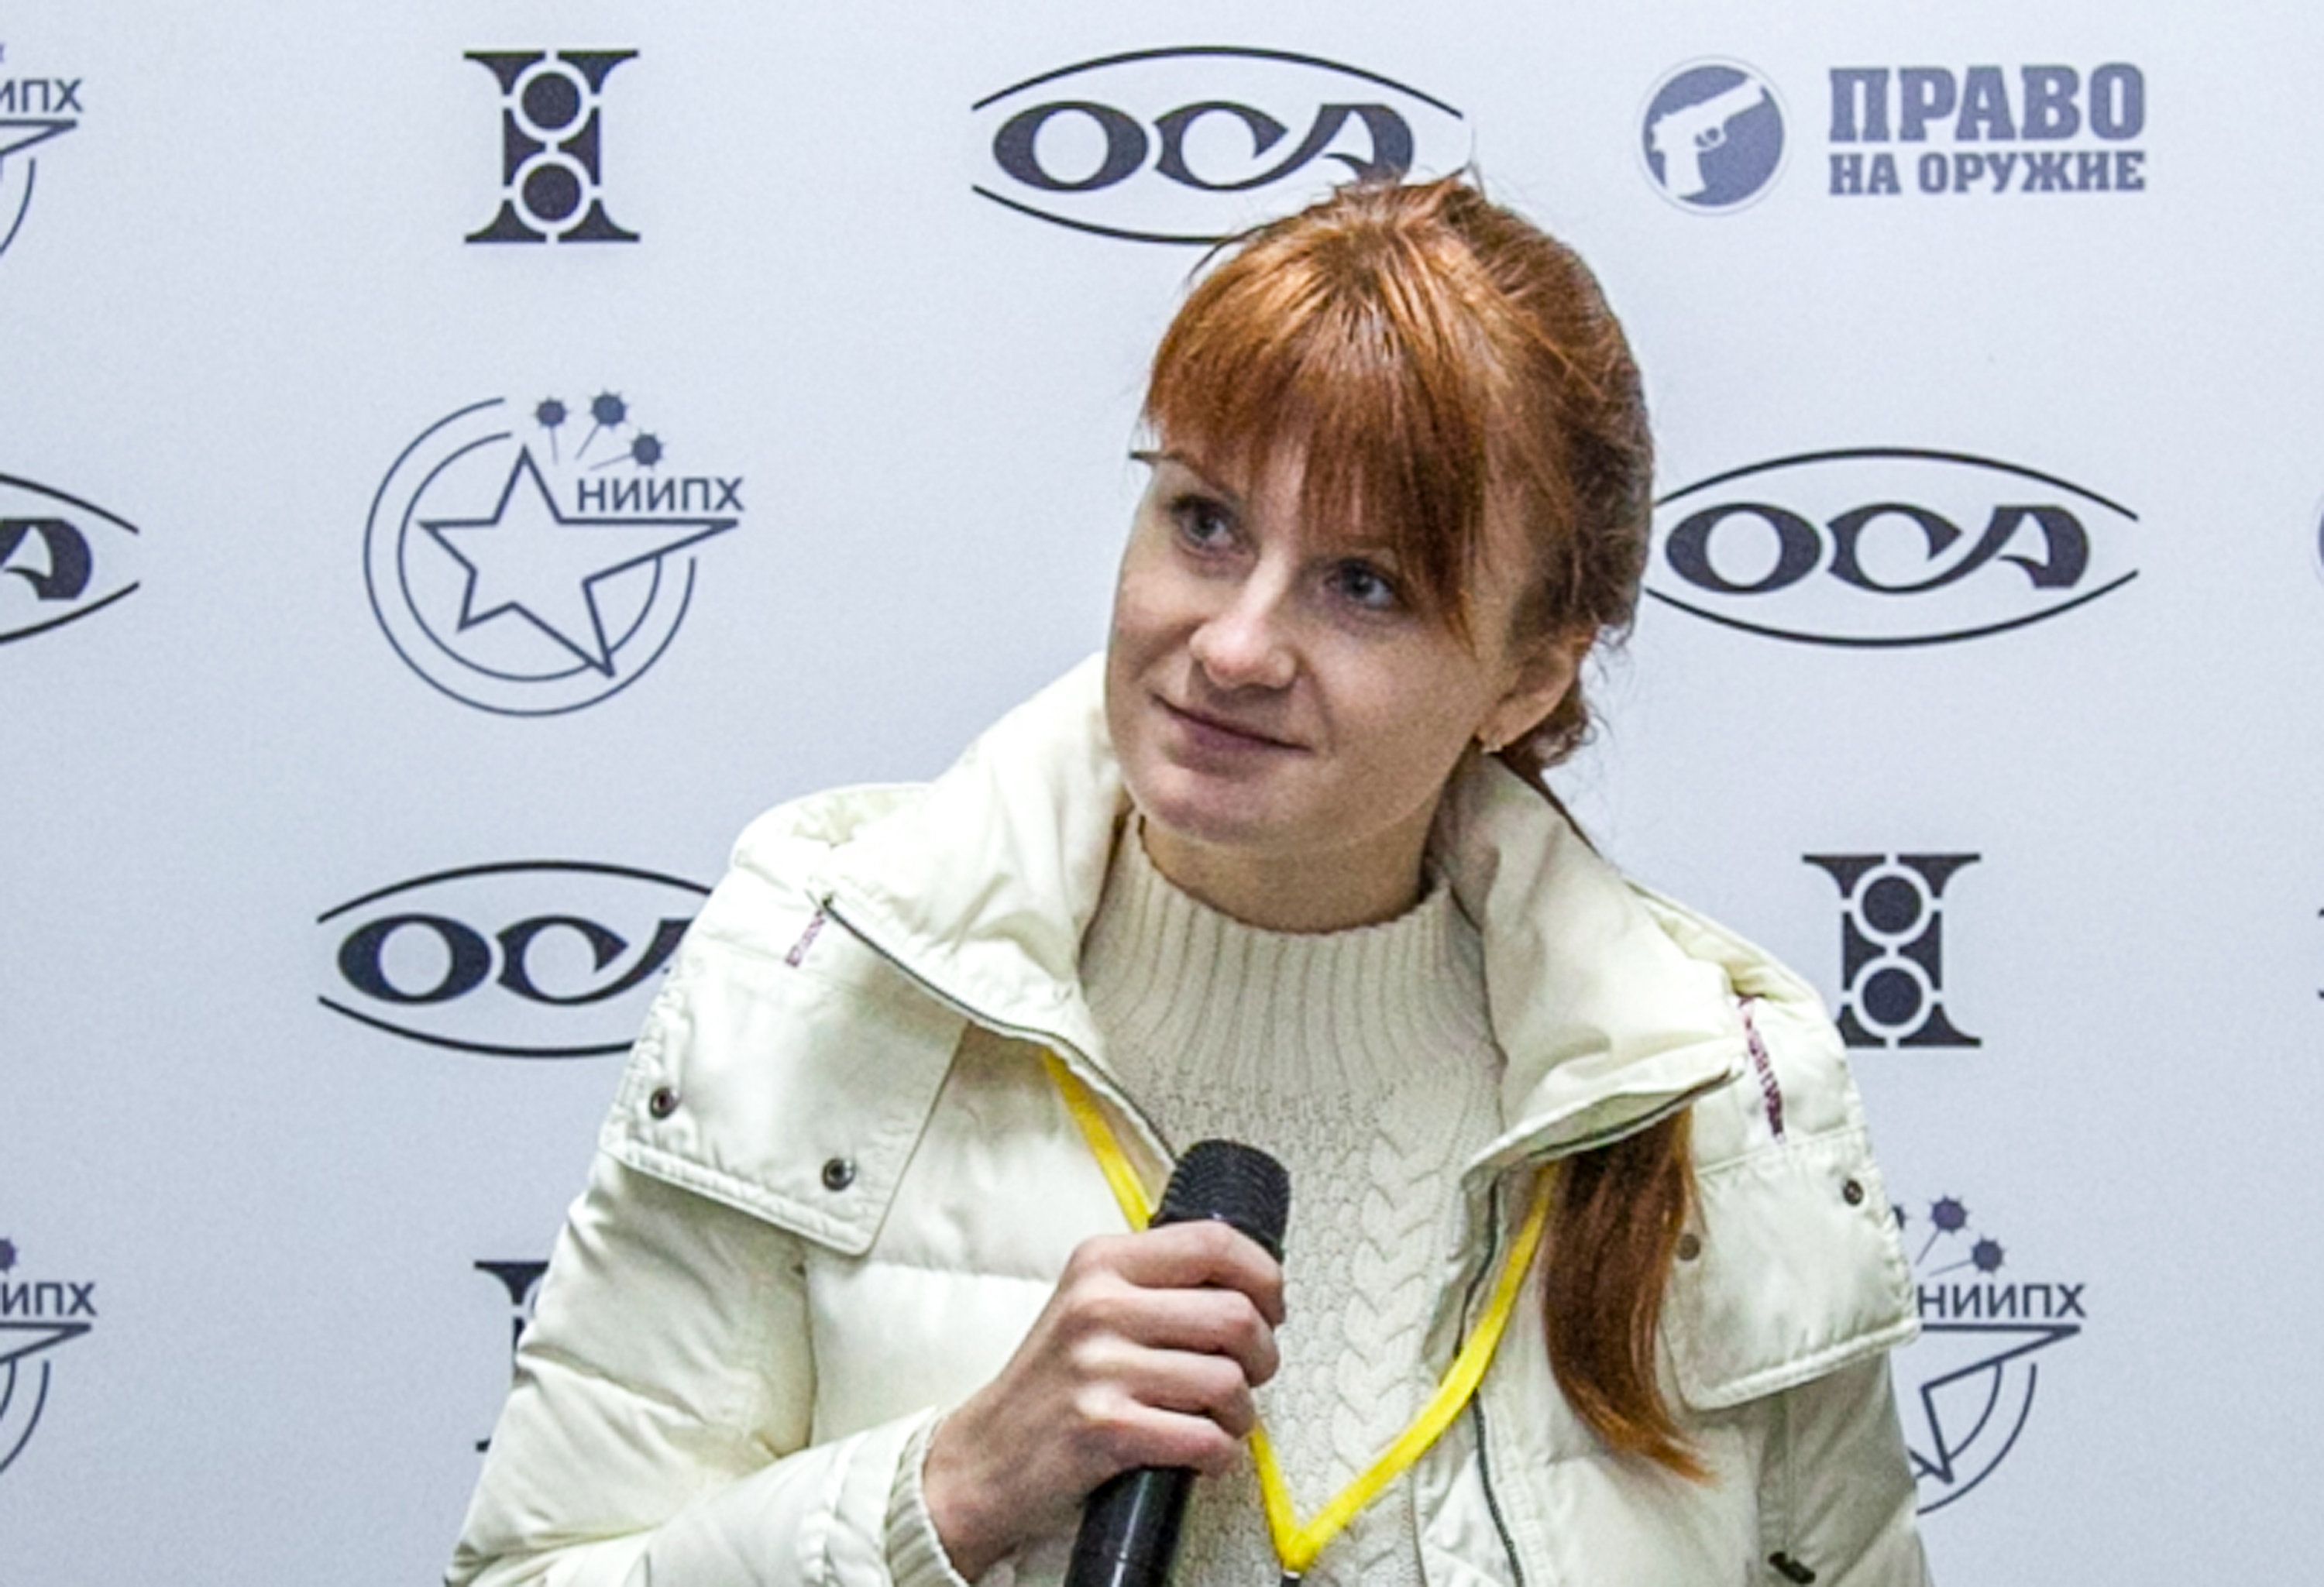 Mariia Butina, leader of a pro-gun organization, speaks on October 8, 2013 during a press conference in Moscow. - A 29-year-old Russian woman has been arrested for conspiring to influence US politics by cultivating ties with political groups including the National Rifle Association, the powerful gun rights lobby. Mariia Butina, whose name is sometimes spelled Maria, was arrested in Washington on July 15, 2018 and appeared in court on July 16, the Justice Department said. (Photo by STR / AFP)        (Photo credit should read STR/AFP/Getty Images)